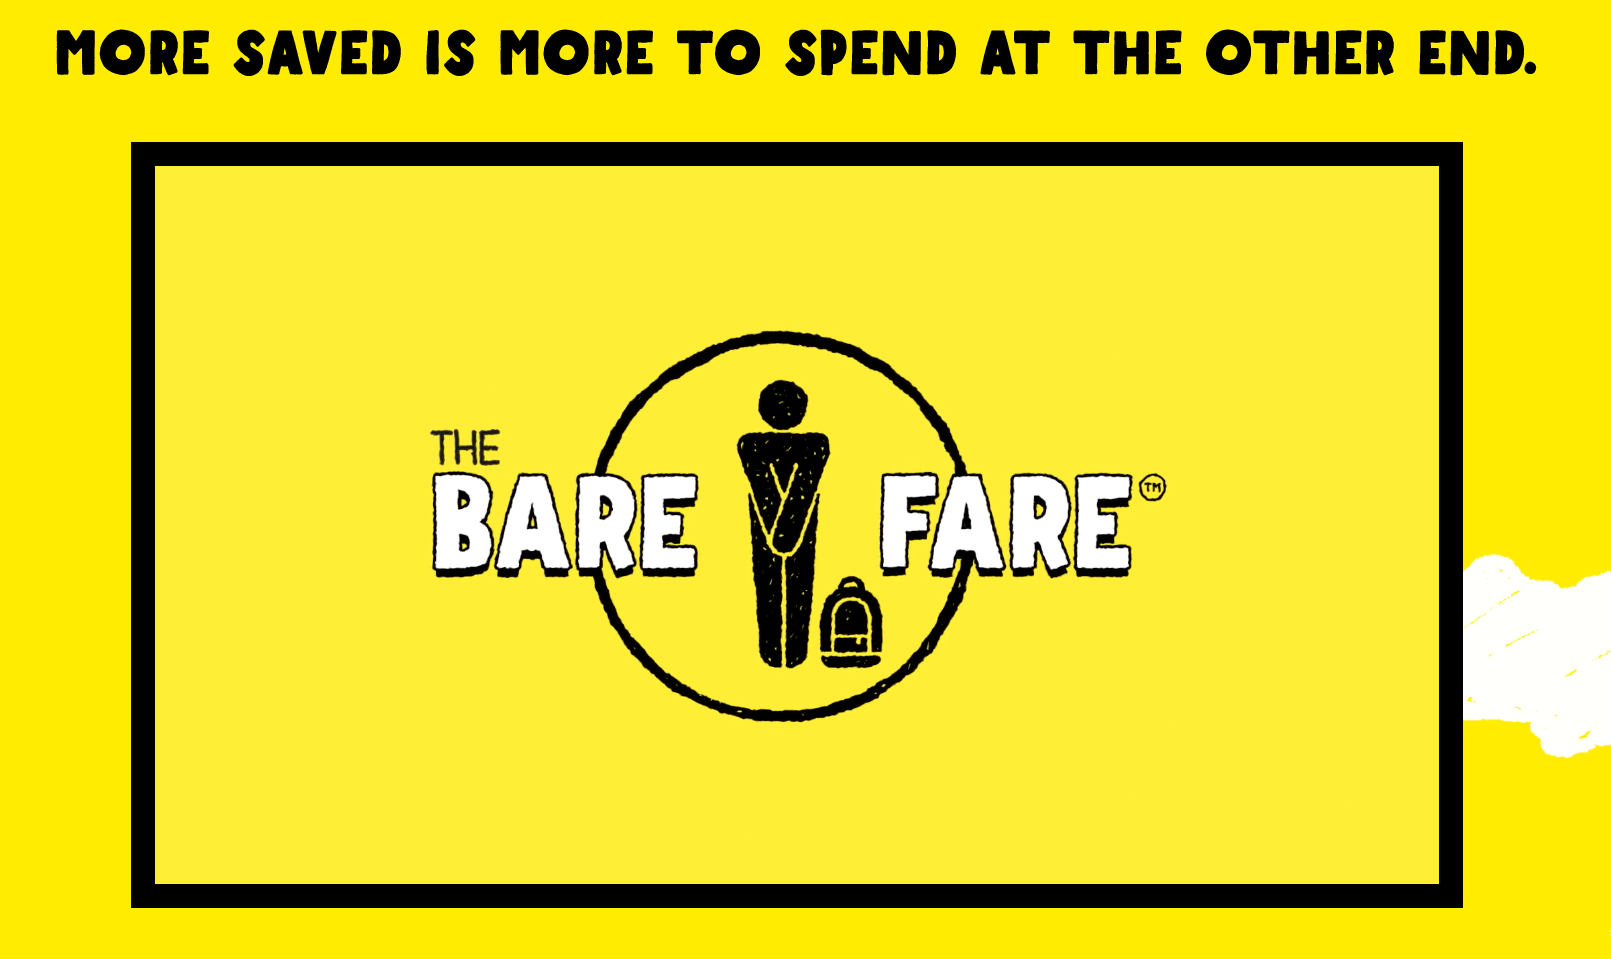 Spirit Airlines - The Bare Fare